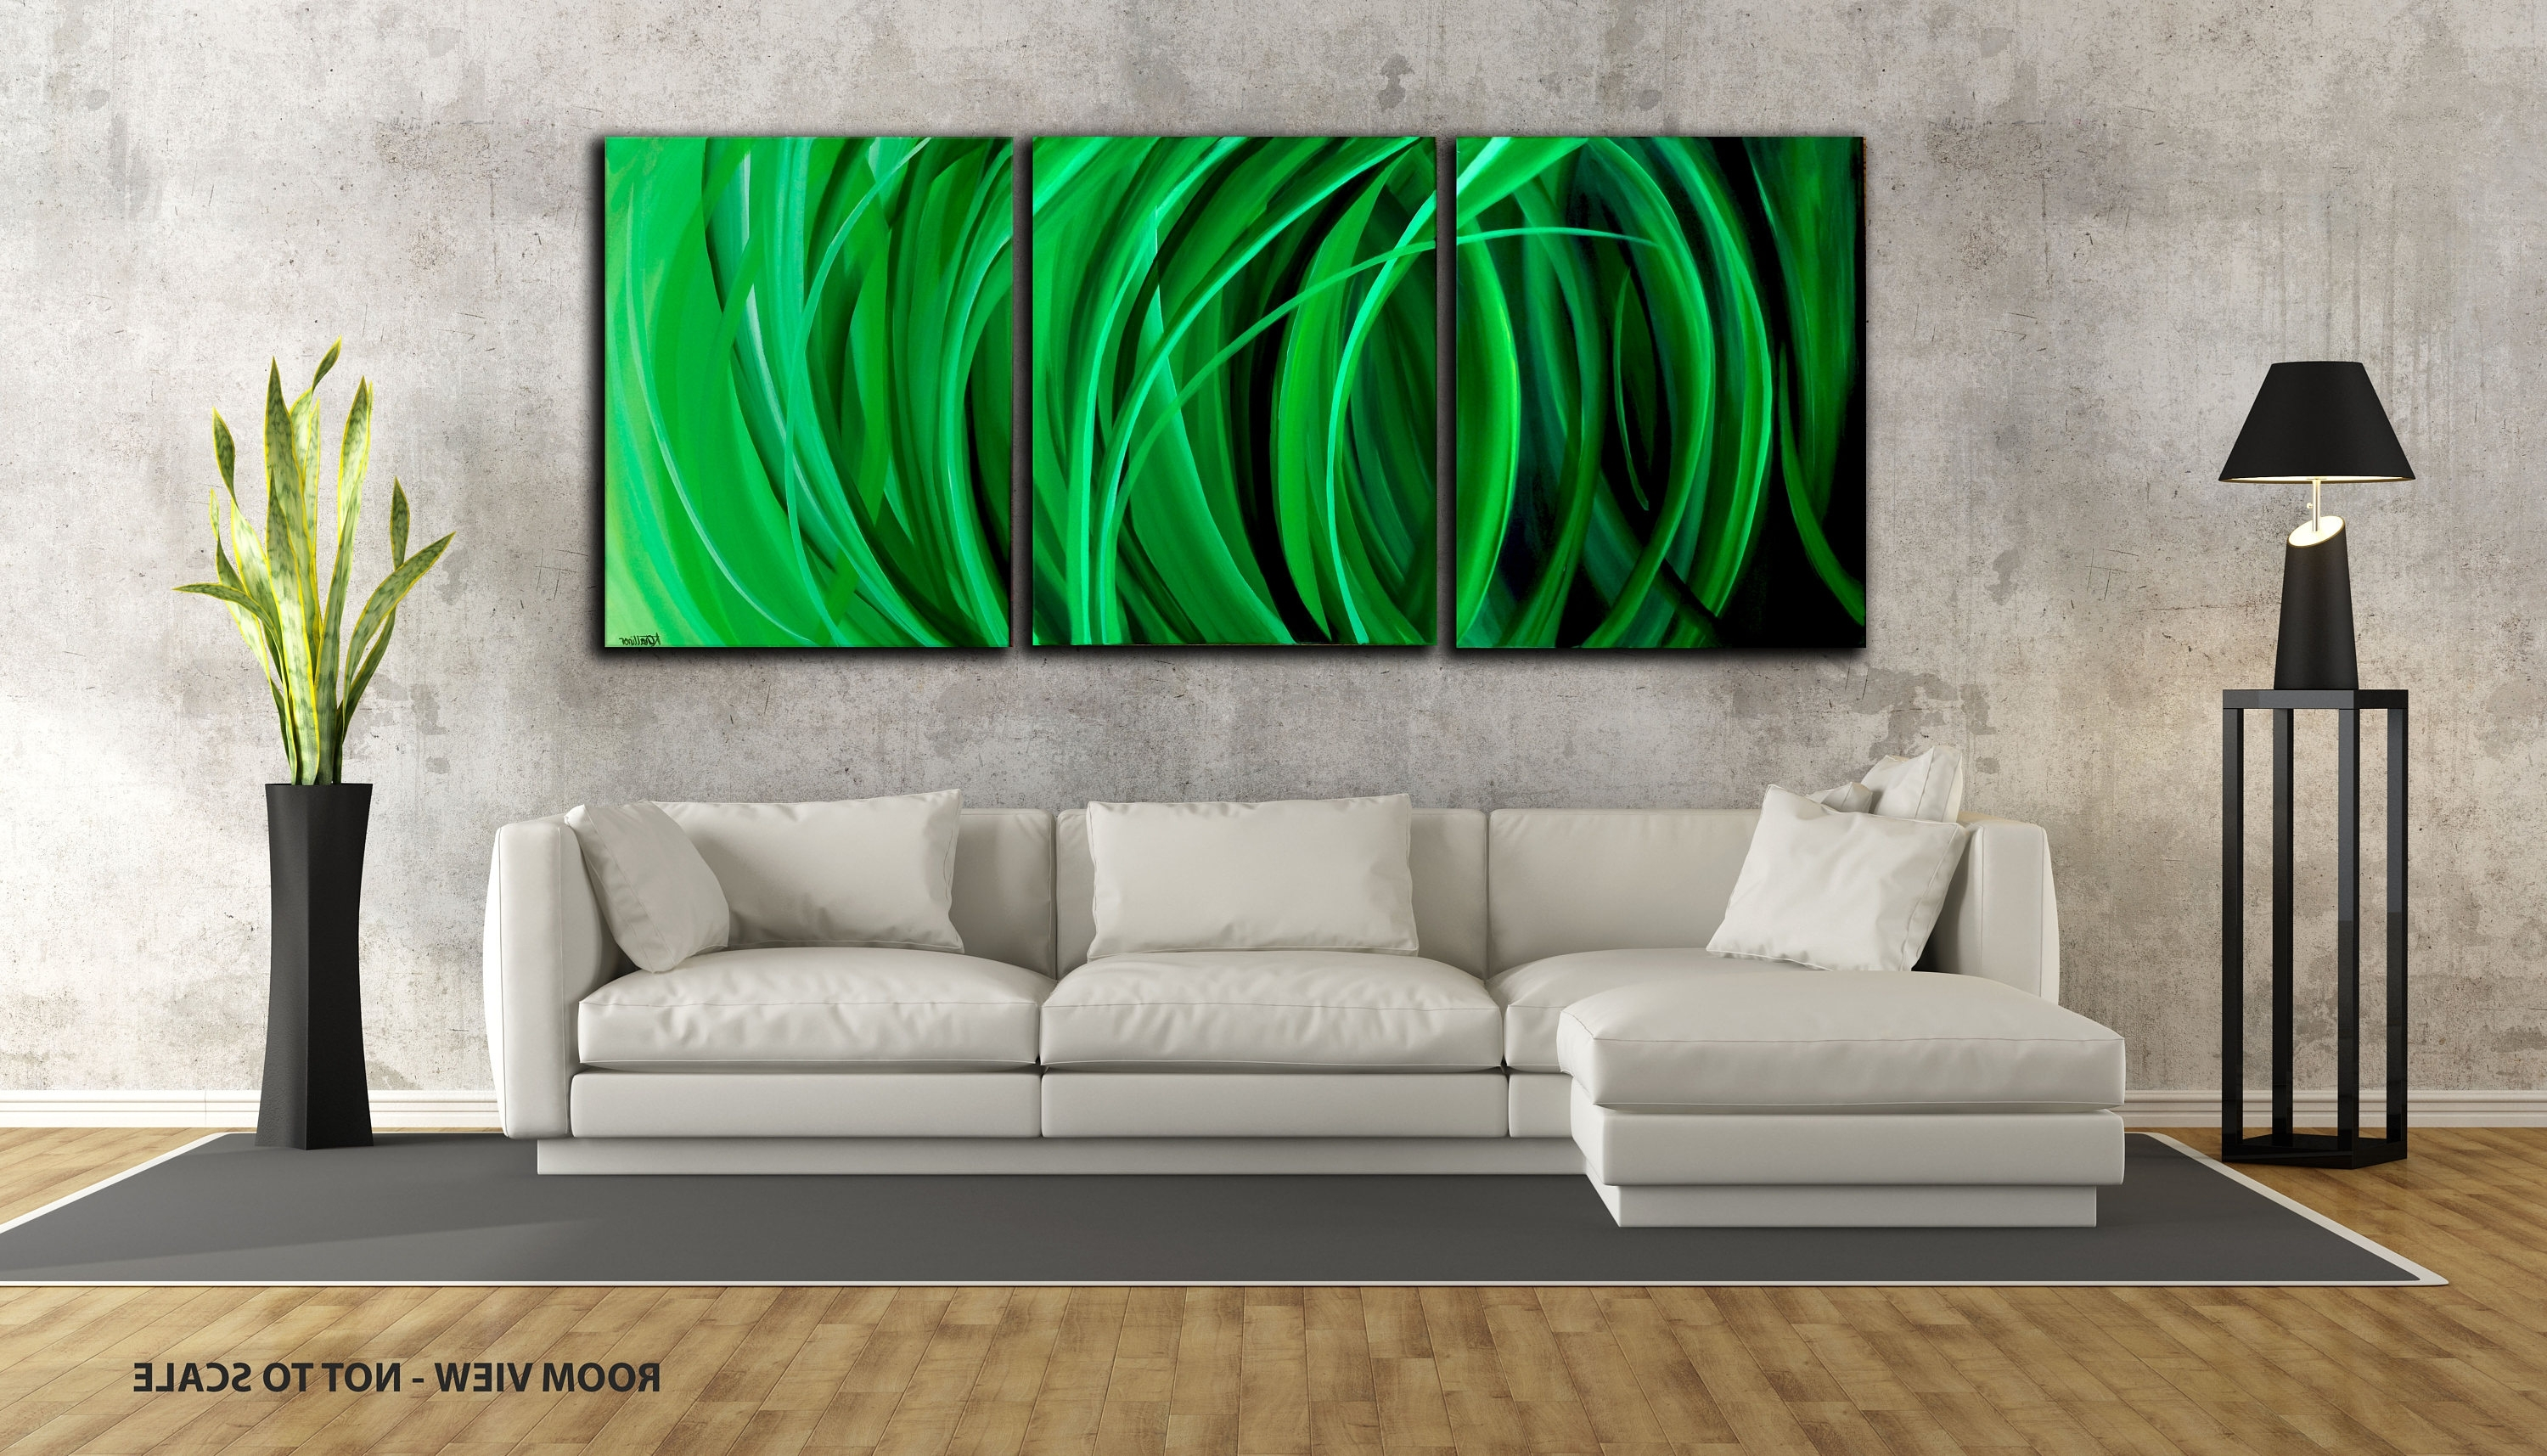 Latest 48 Large, Original Abstract Painting, Canvas, Wall Art, Modern With Large Green Wall Art (View 7 of 15)